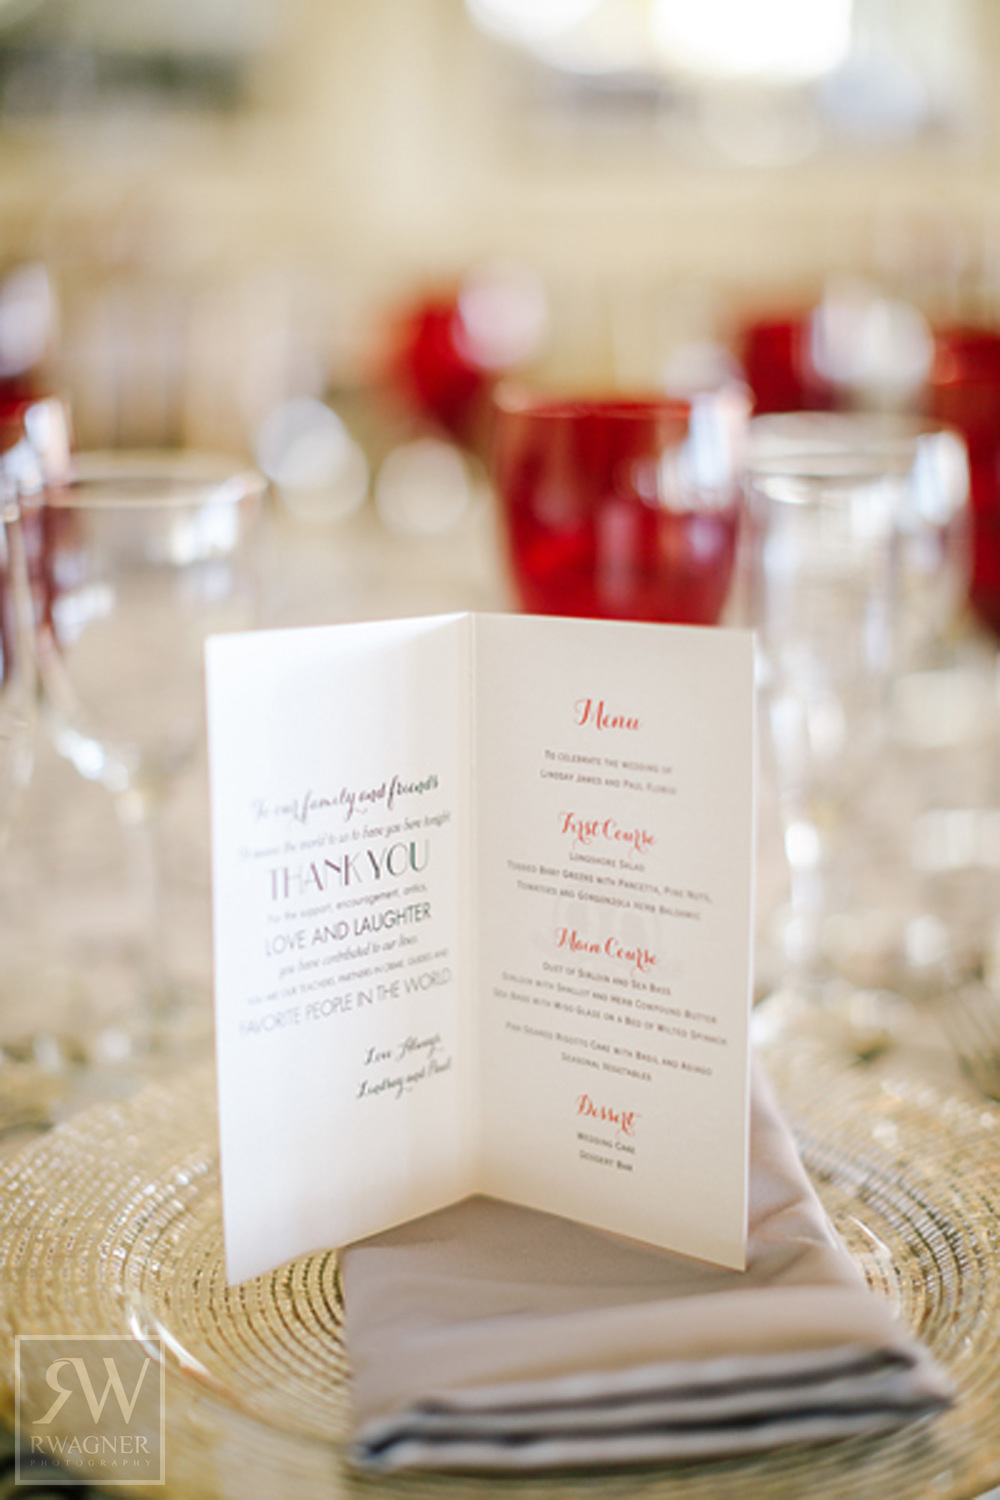 ceci_new_york_luxury_wedding_invitations_couture_red_black_white_real_wedding_dramatic_inn_at_longshore_v286_19.jpg